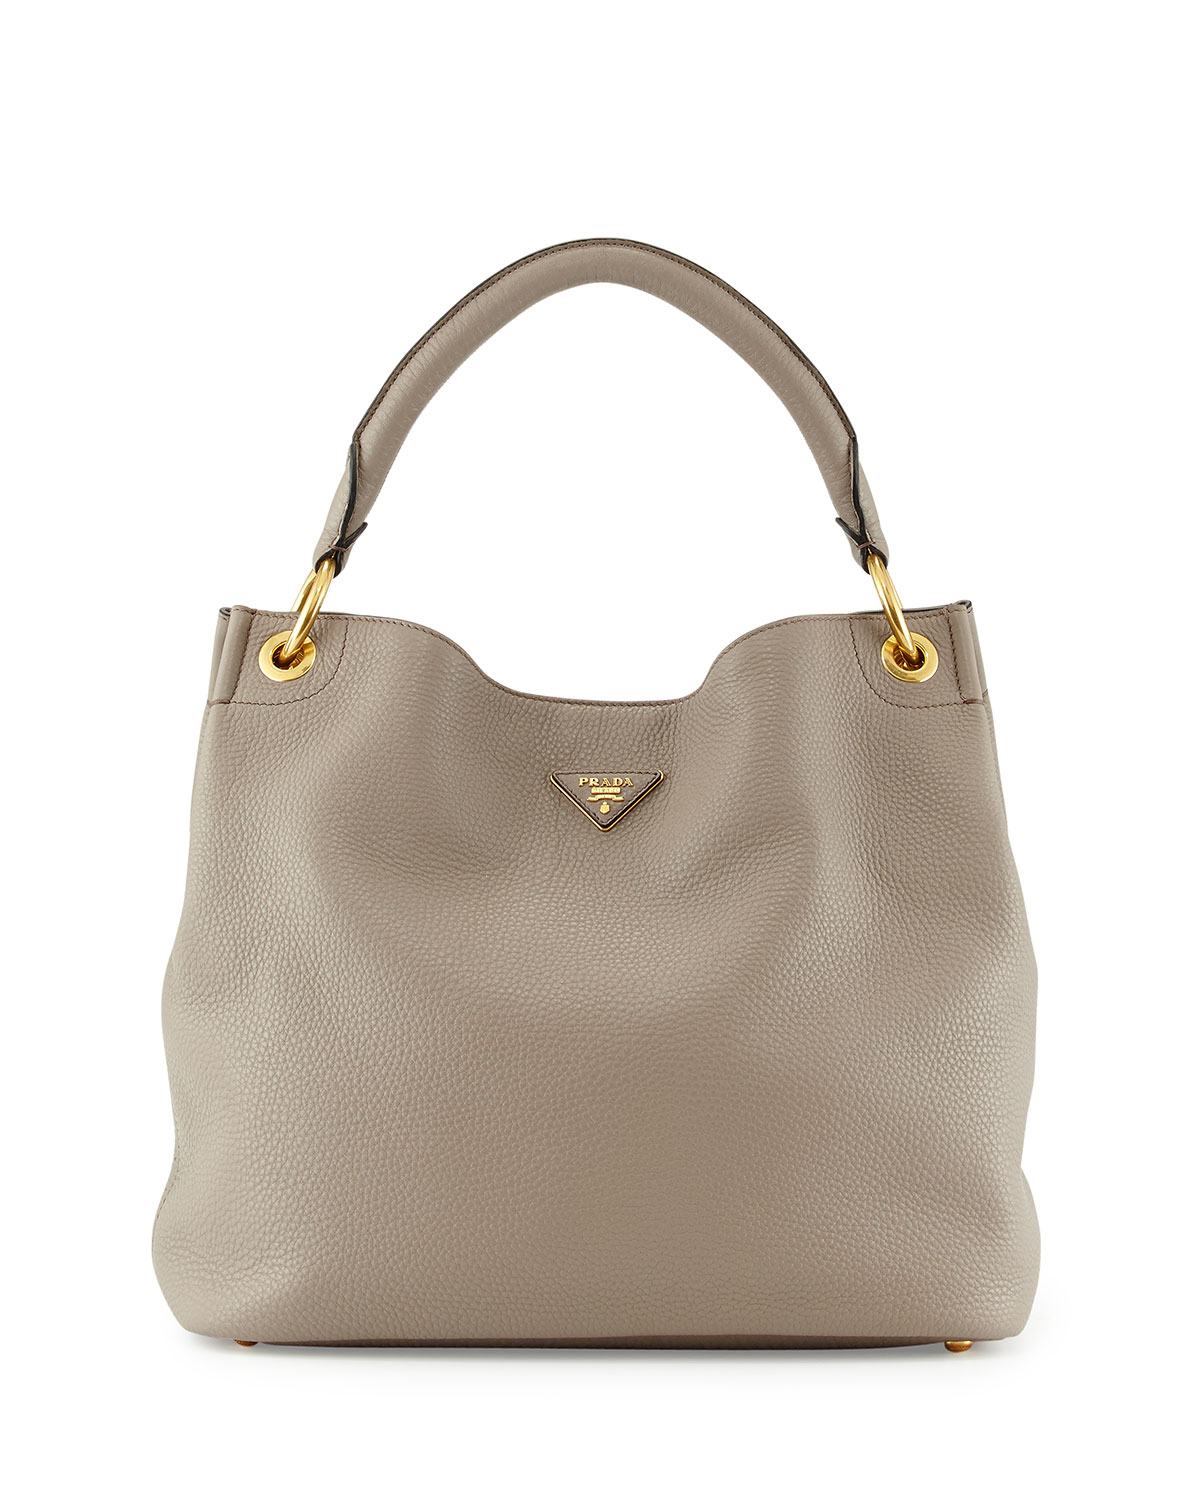 cc3e4881299e Lyst - Prada Vitello Daino Single-strap Hobo Bag in Gray